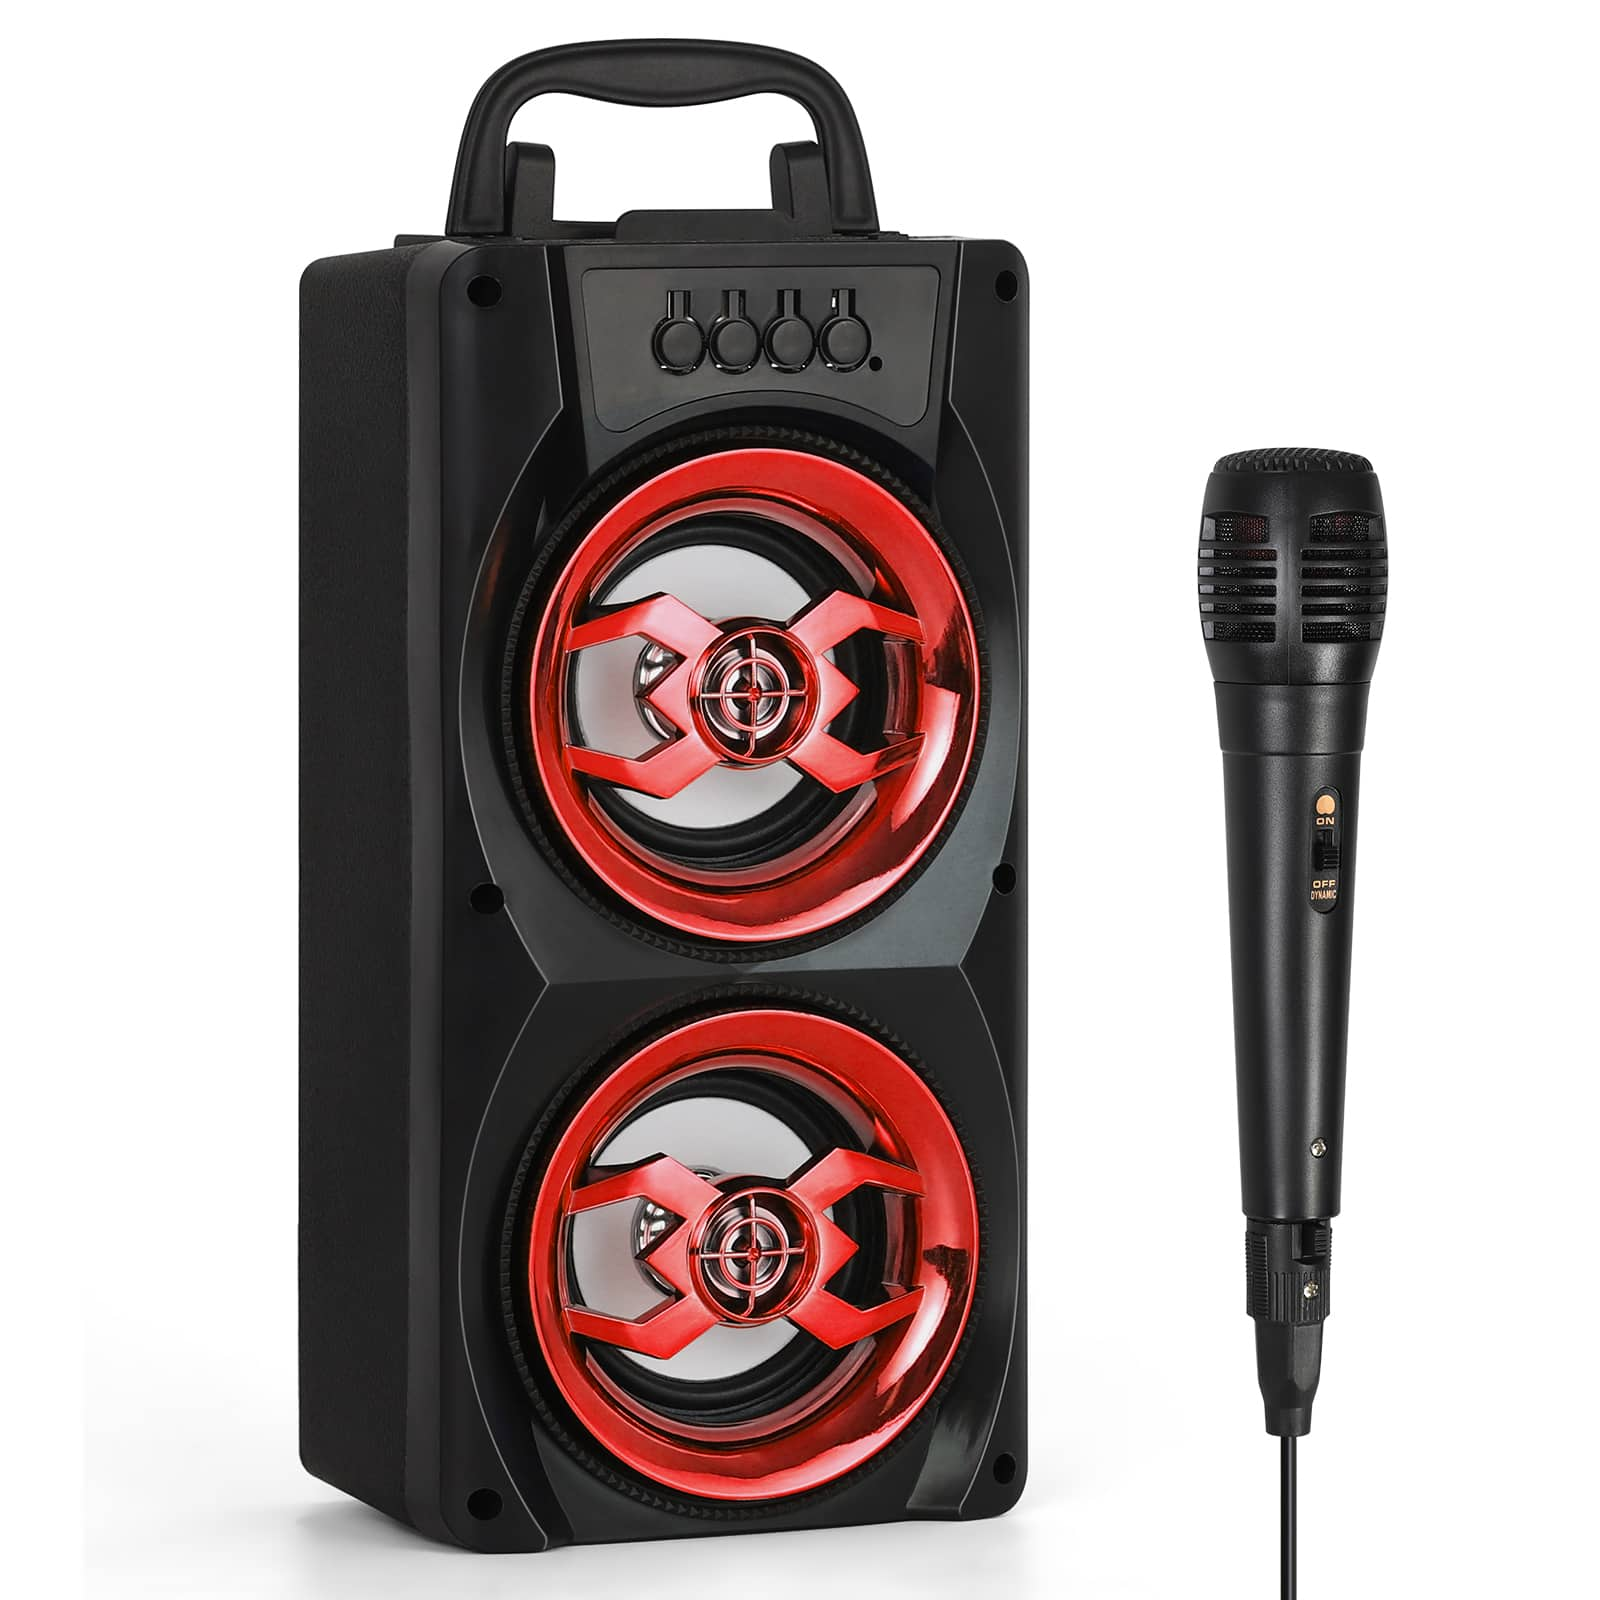 Portable Wireless Bluetooth Speakers Subwoofer for Party $13.97 at Walmart